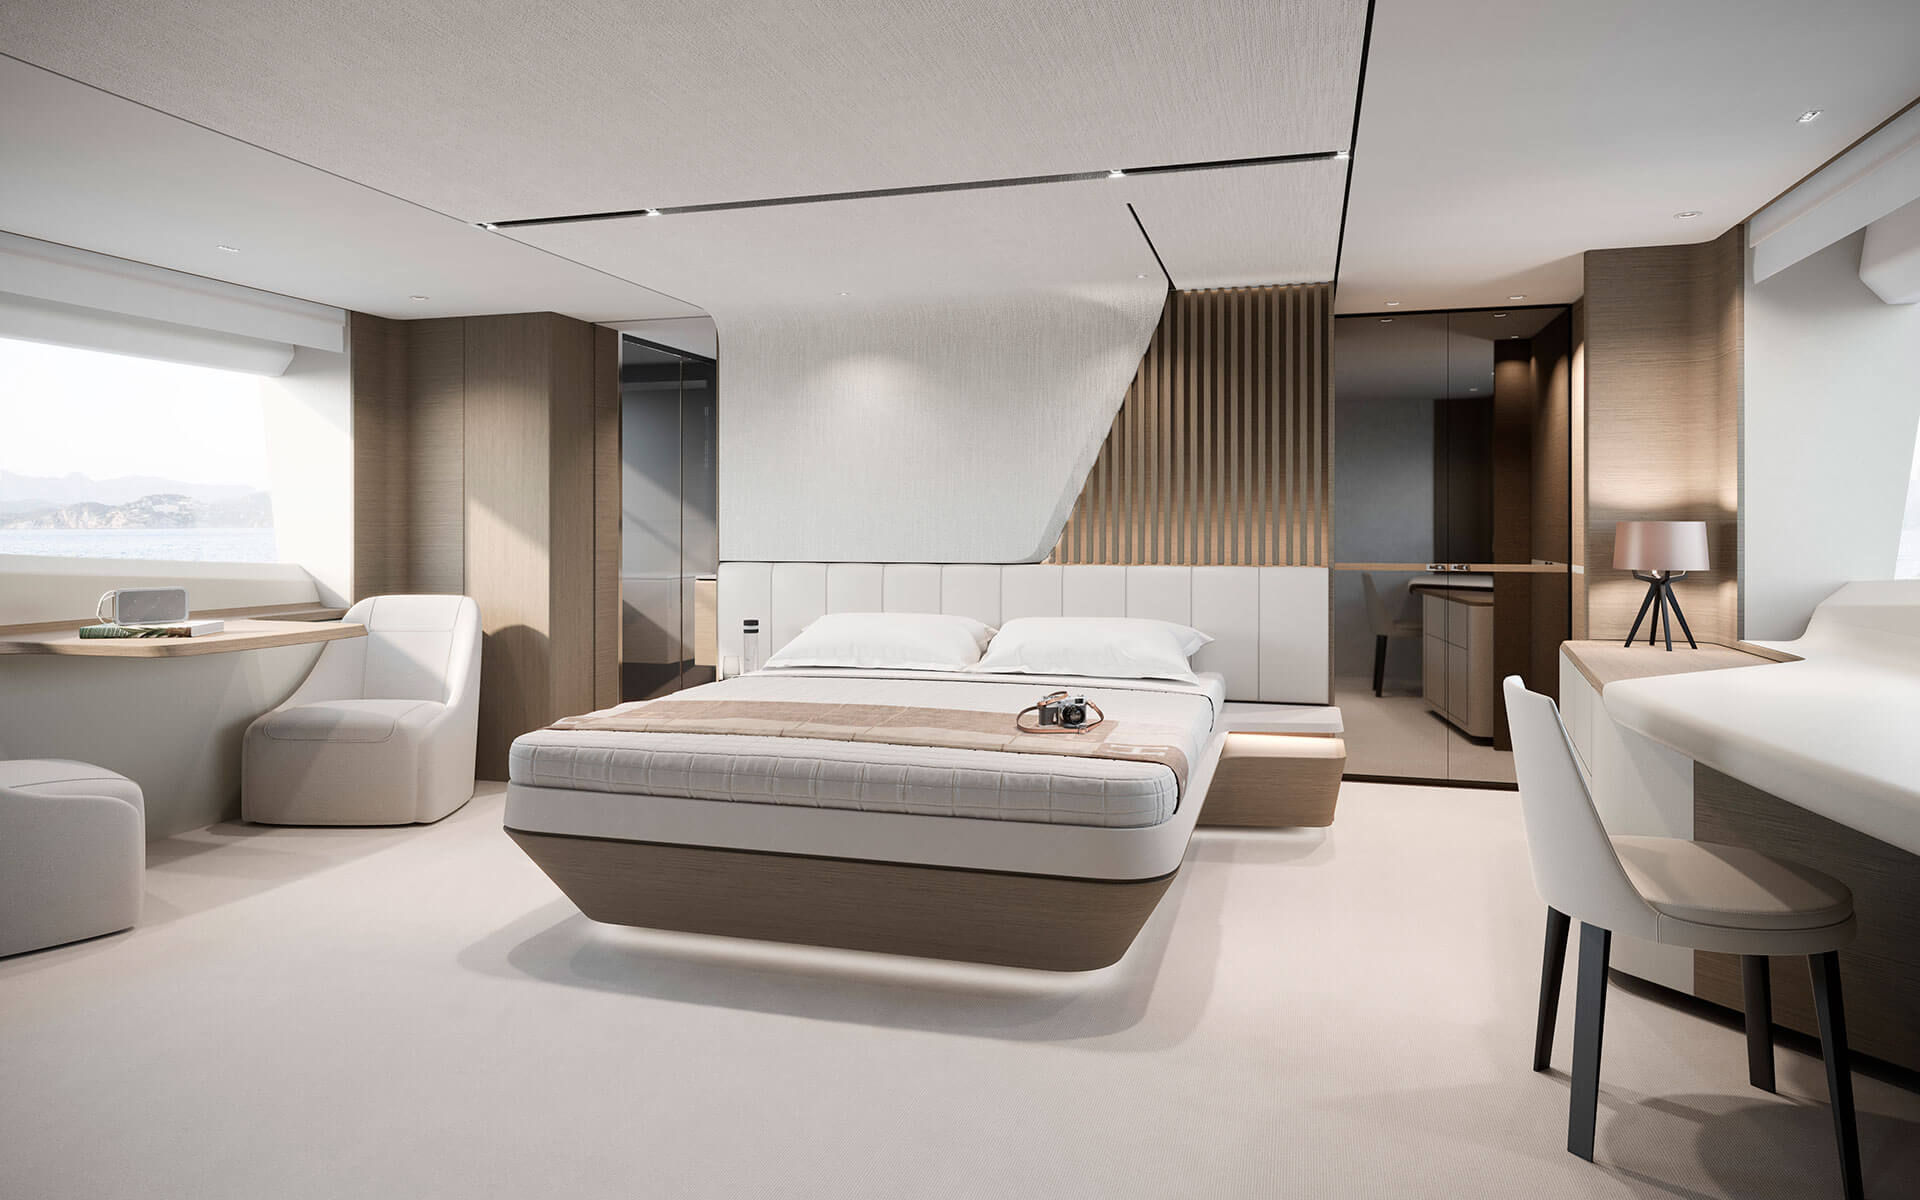 Princess Y85 master suite © Princess Yachts